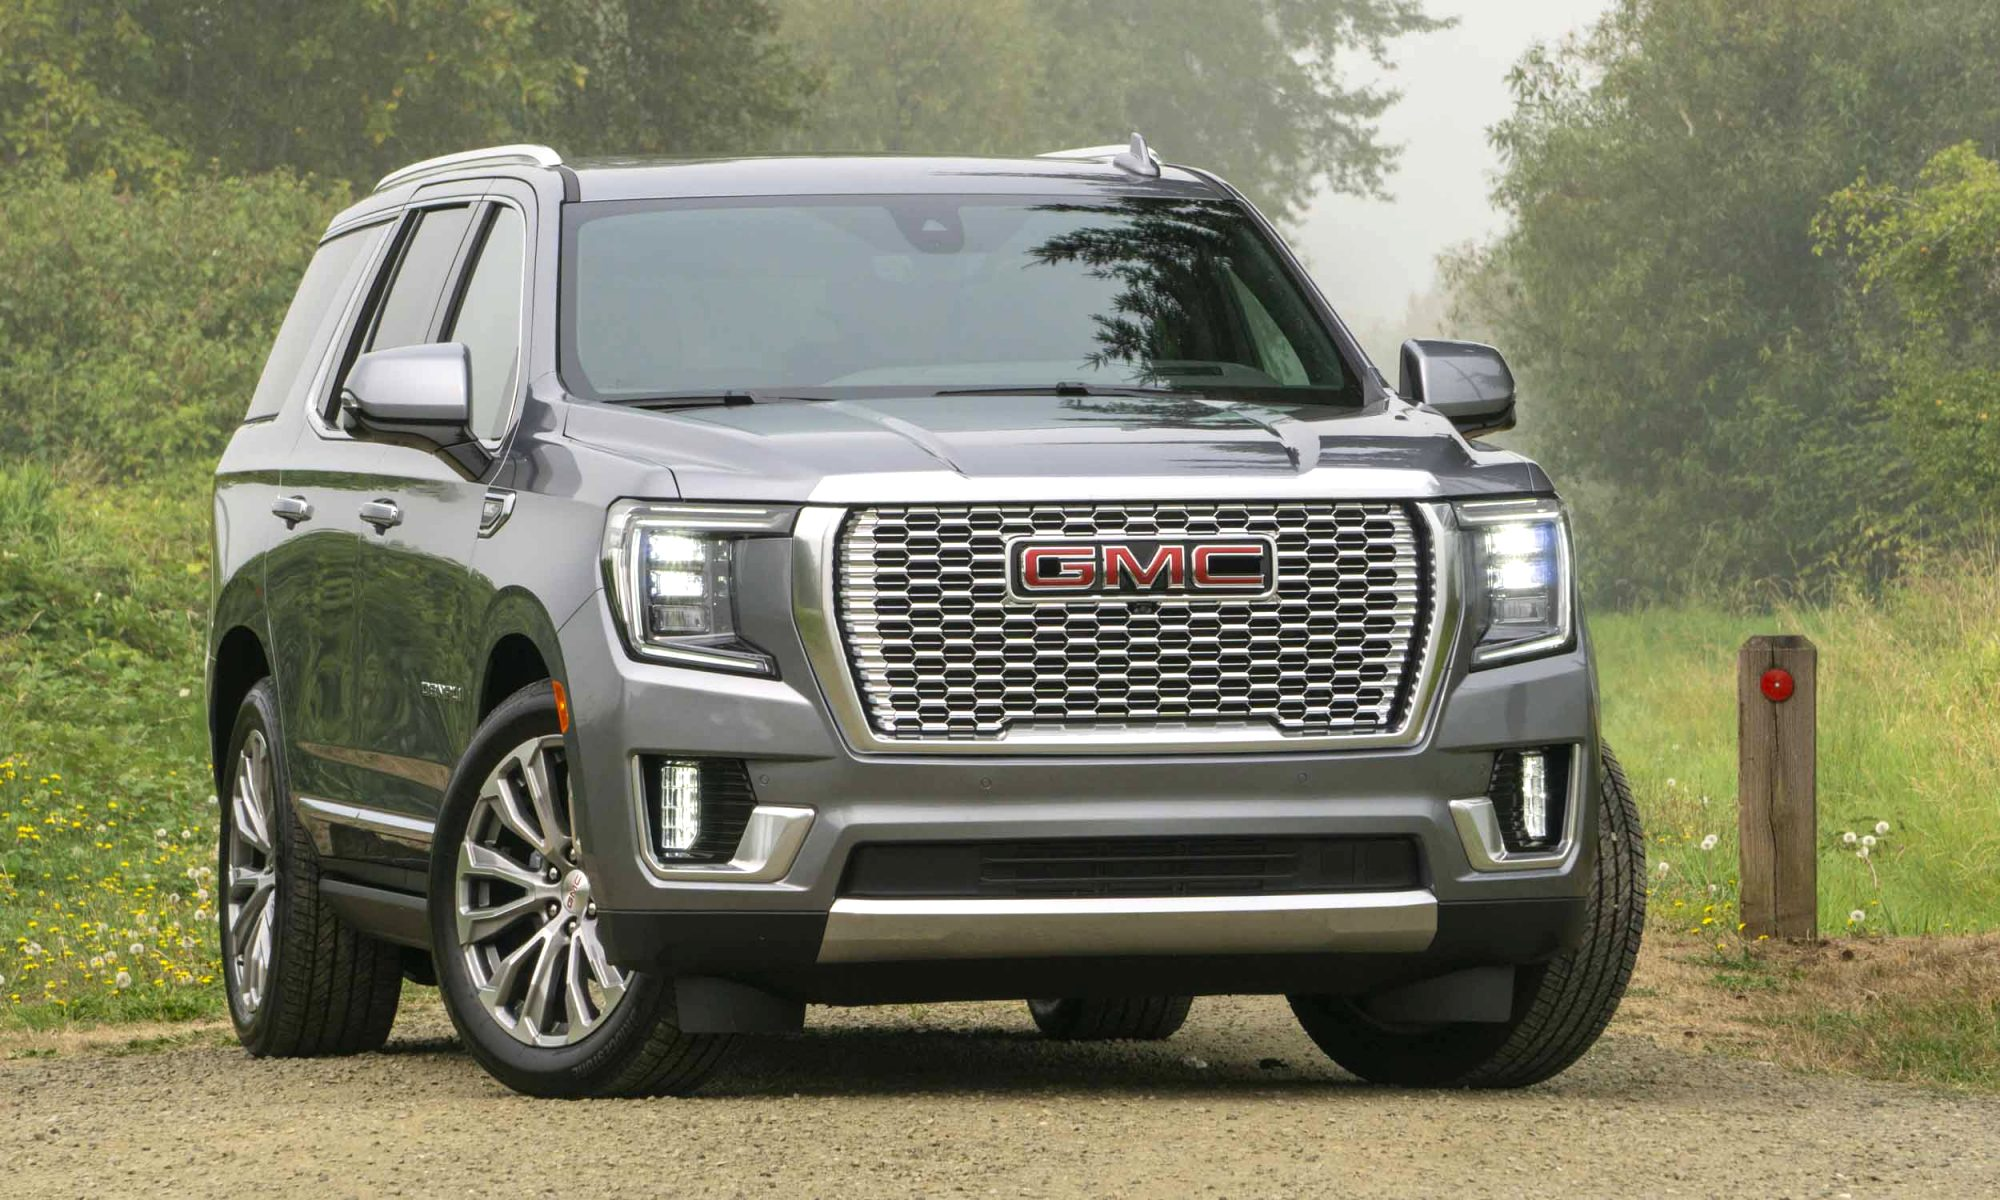 2021 GMC mpg Redesign and Review